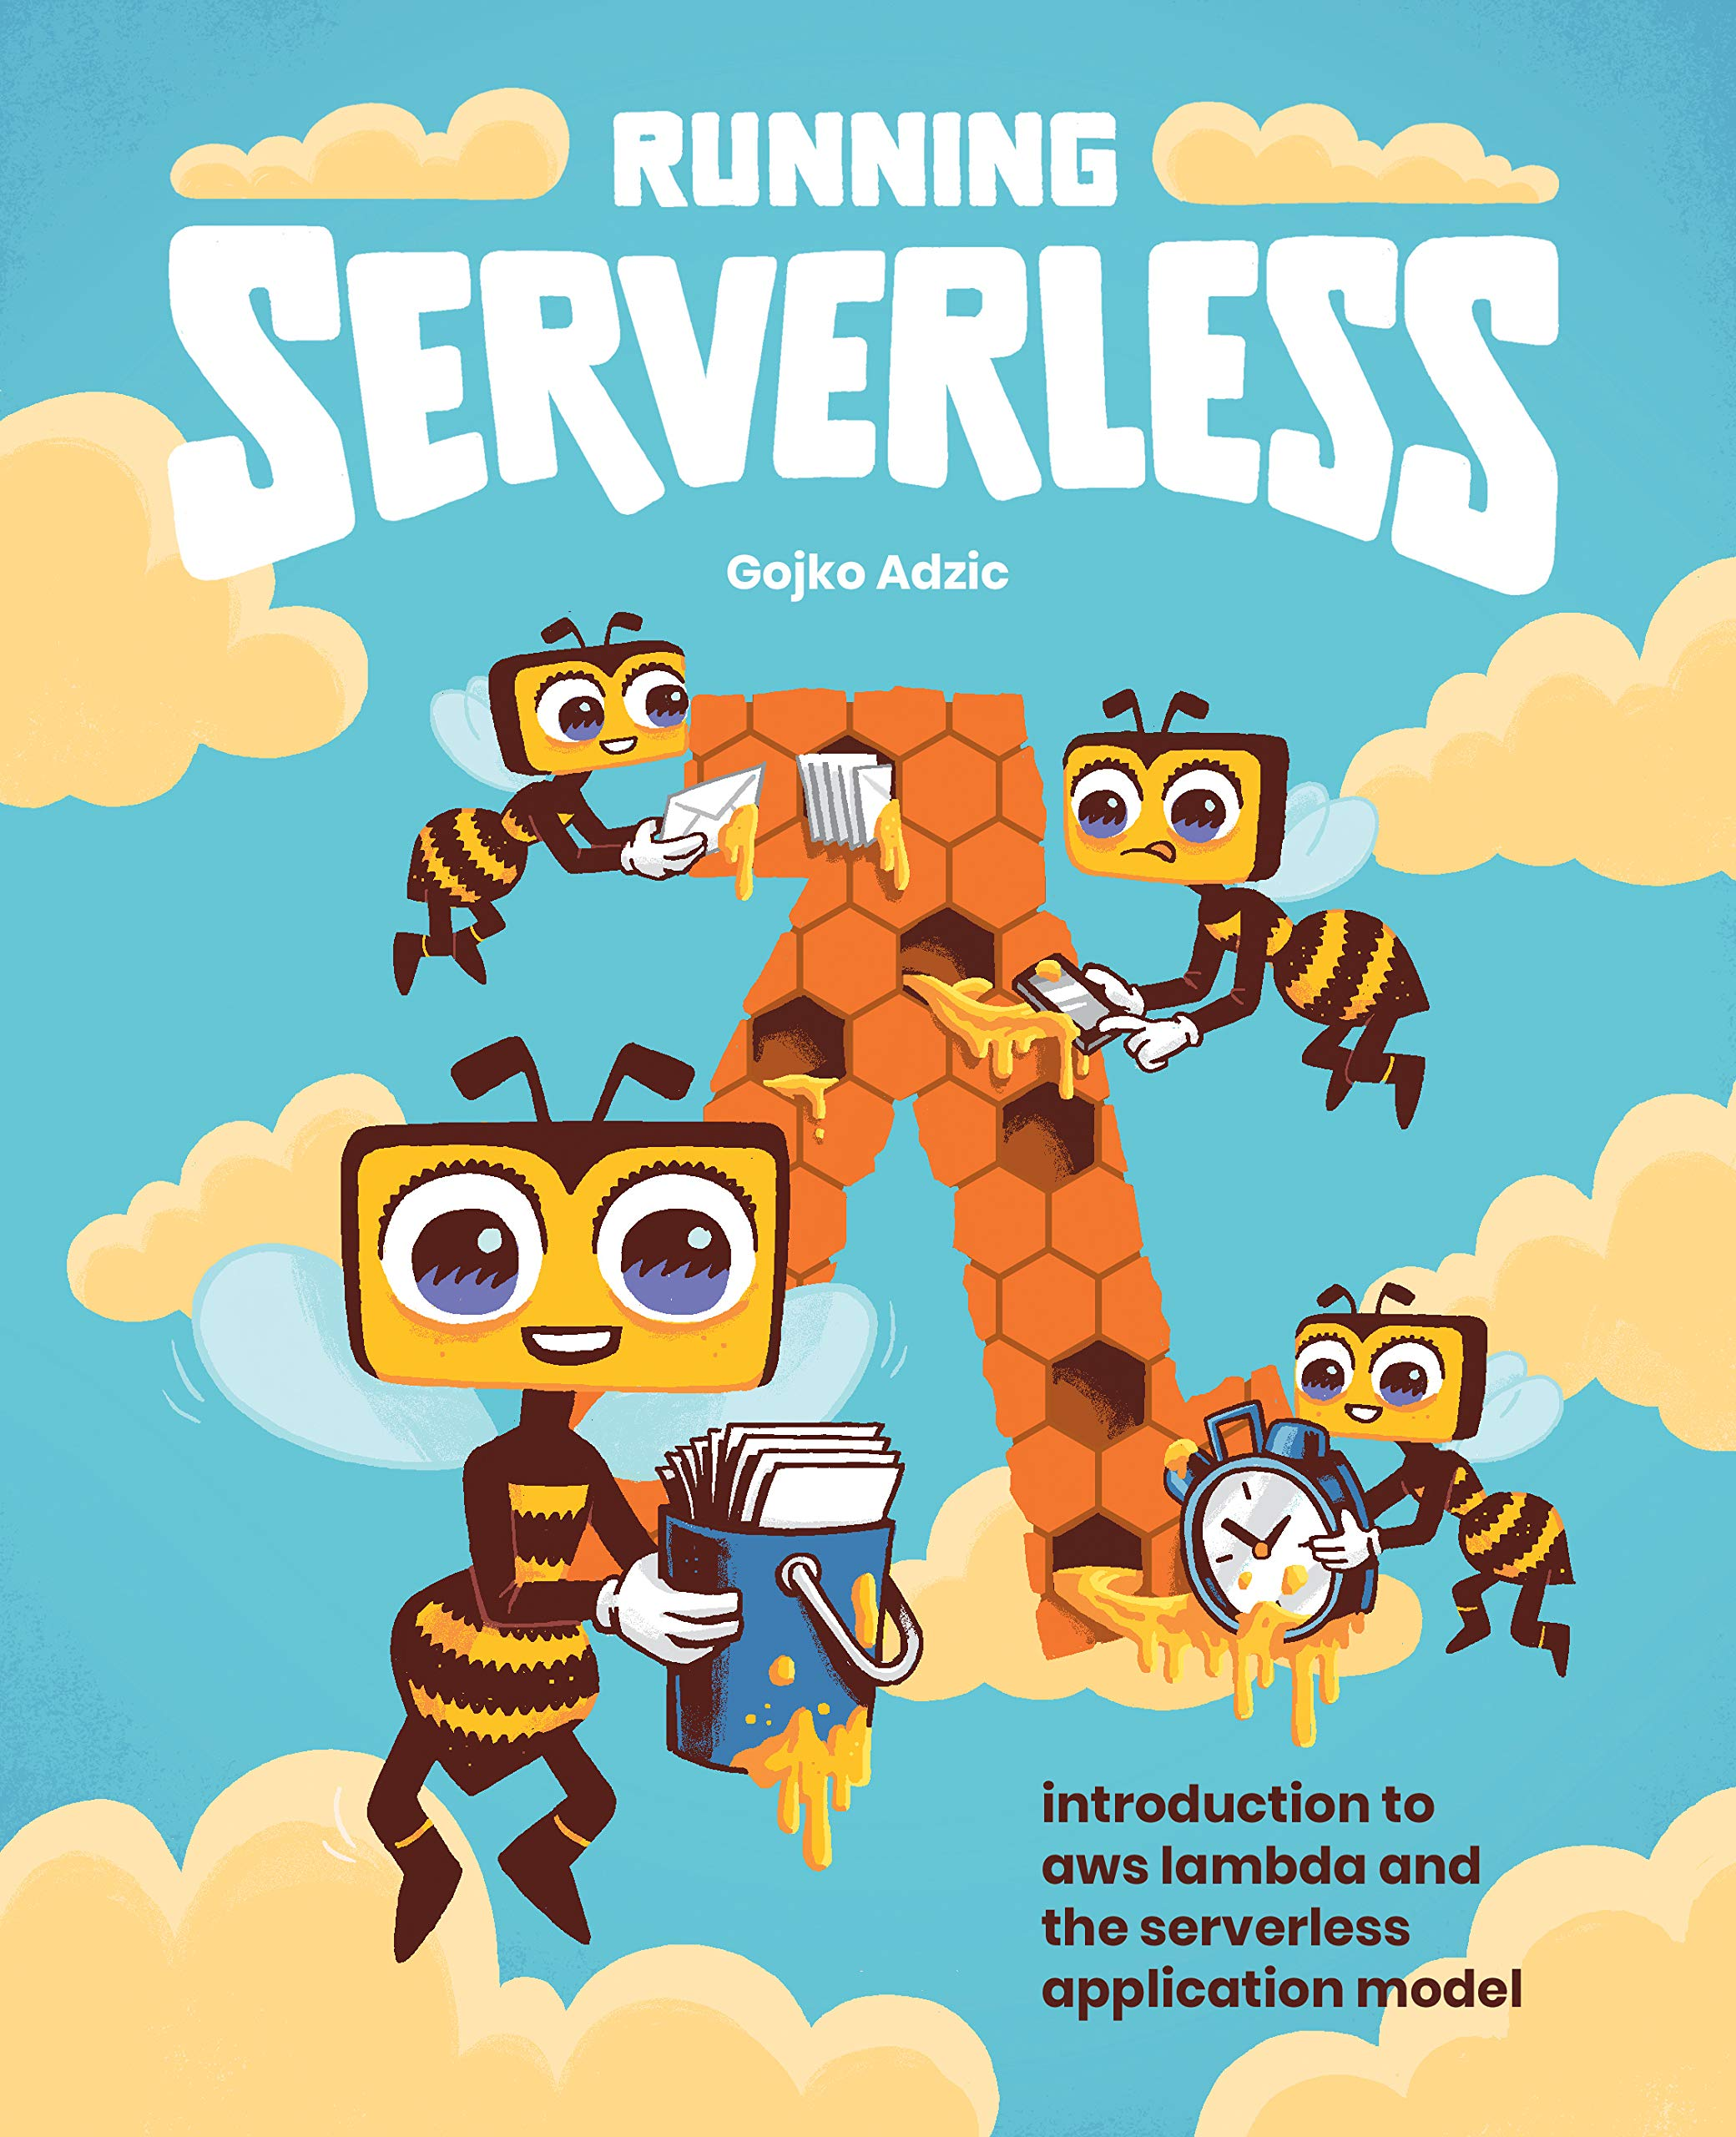 Running Serverless: Introduction to AWS Lambda and the Serverless Application Model